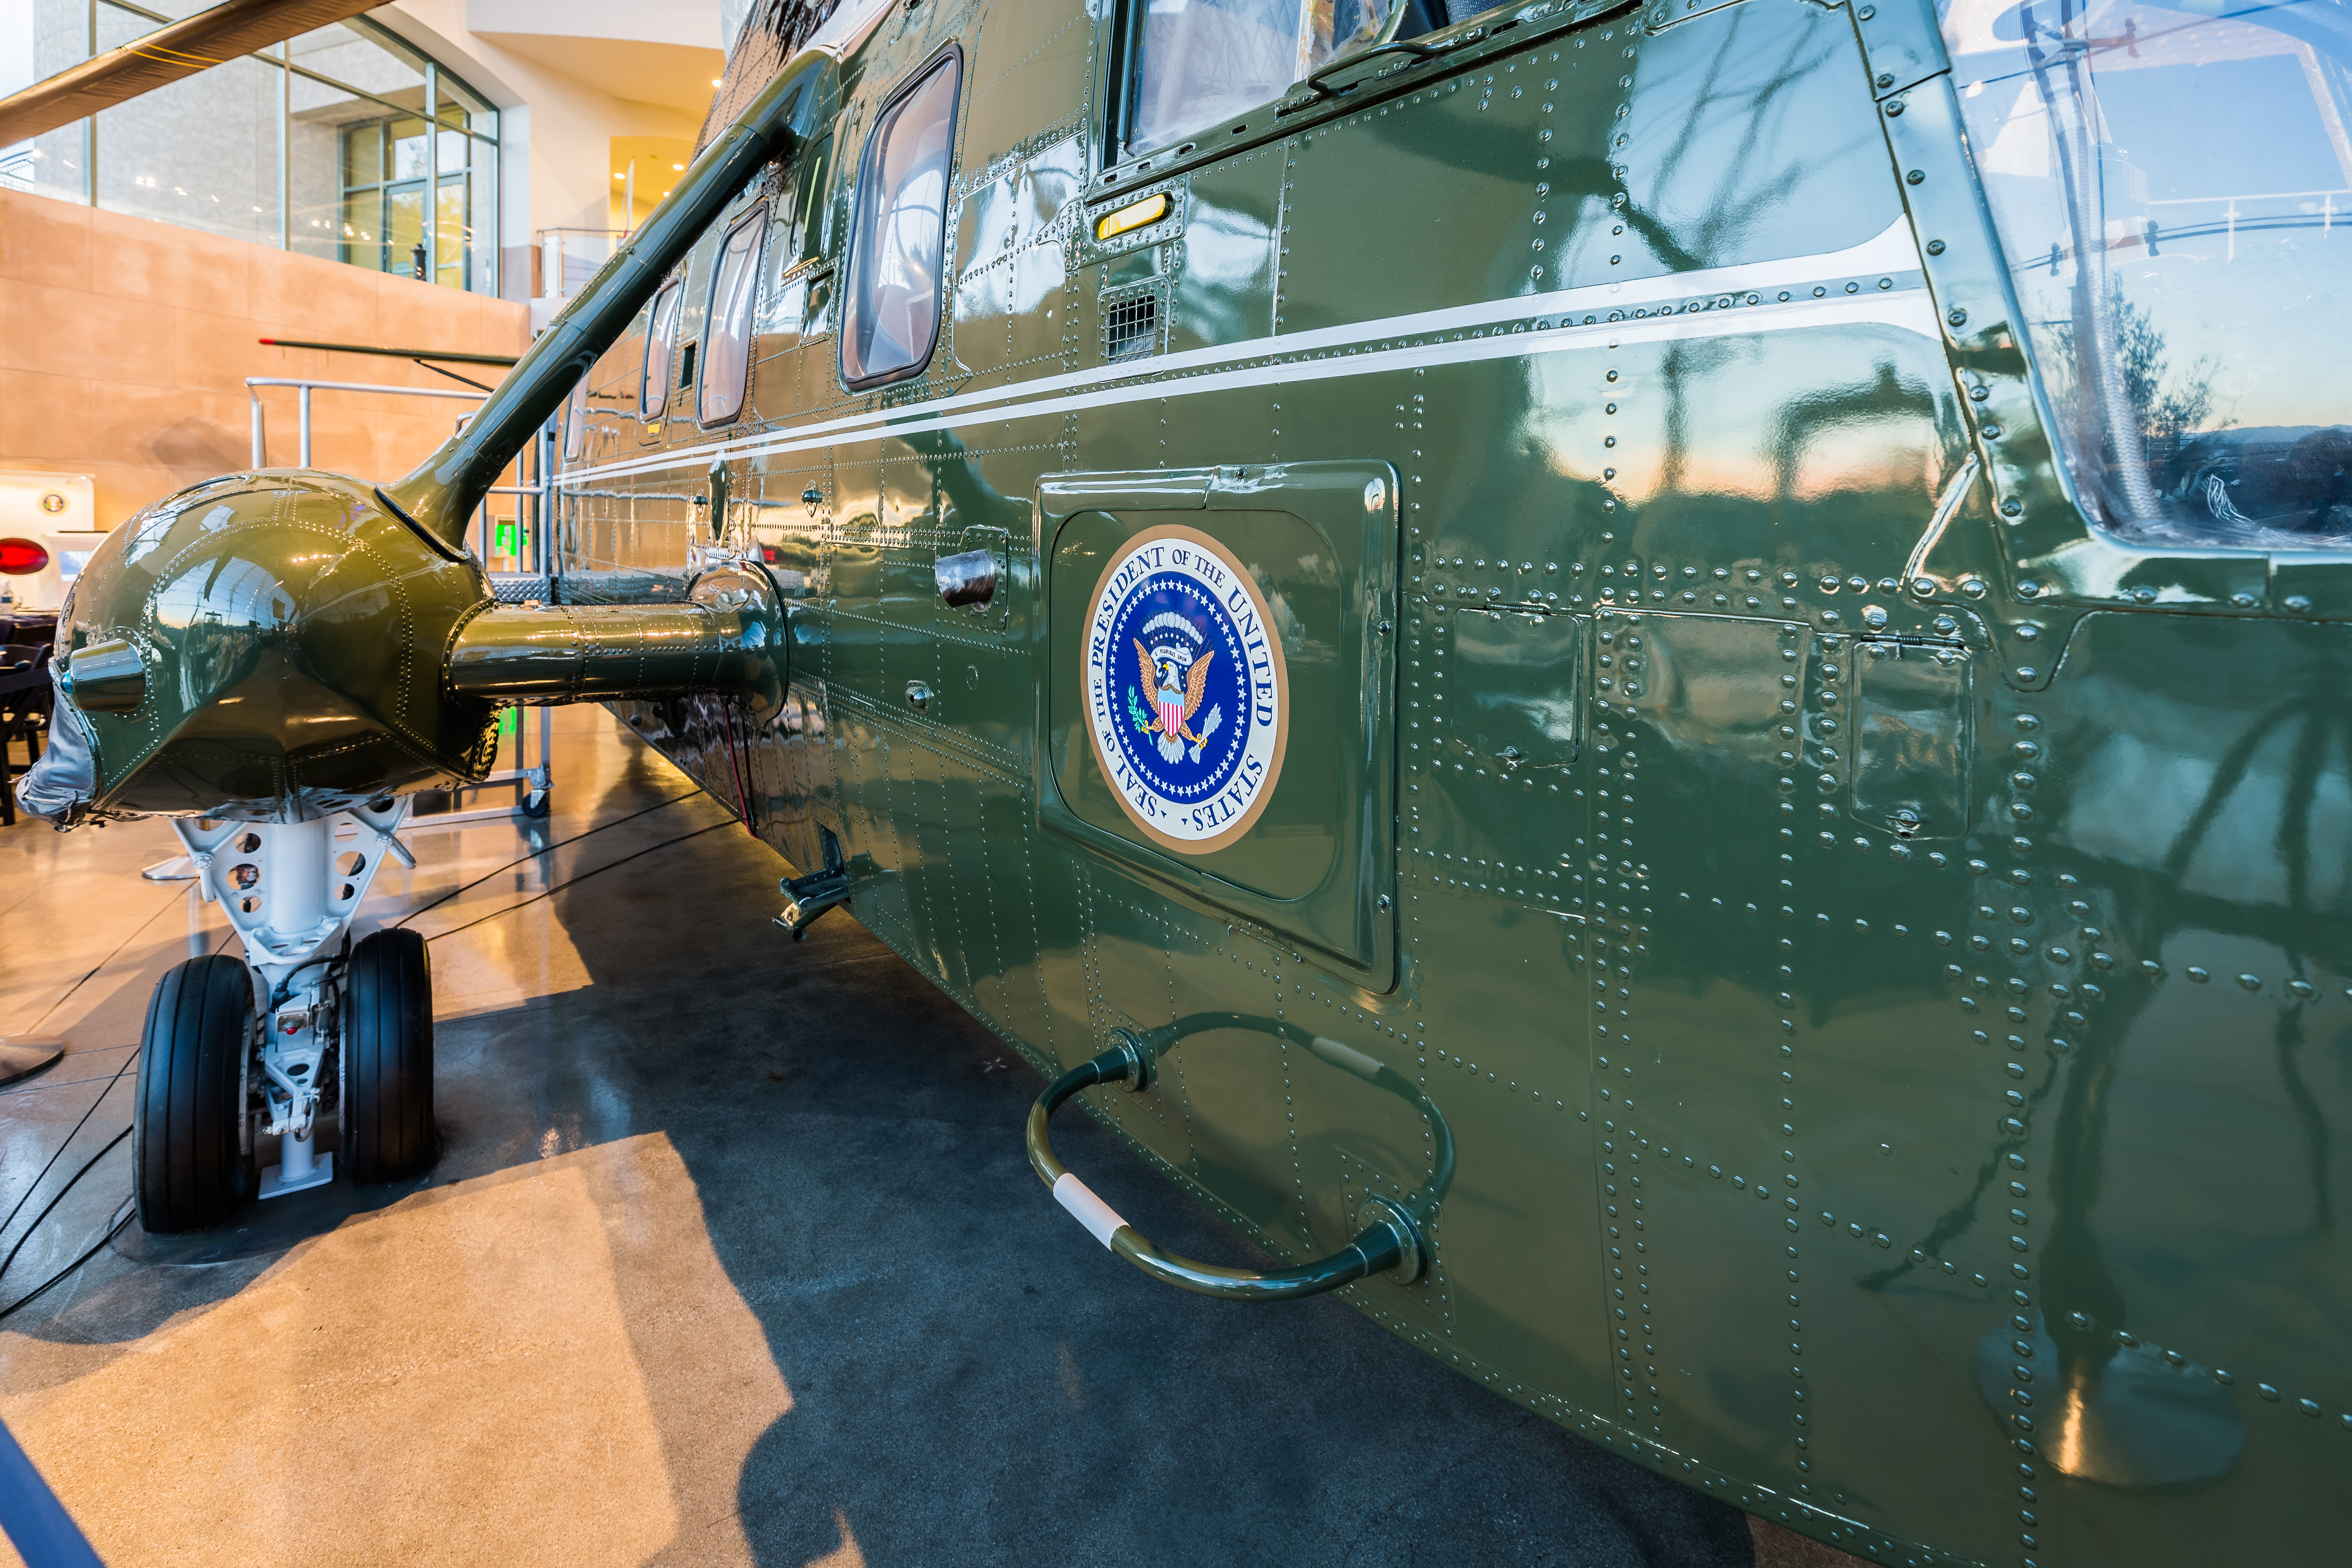 Take a tour of the Ronald Reagan Presidential Library and museum